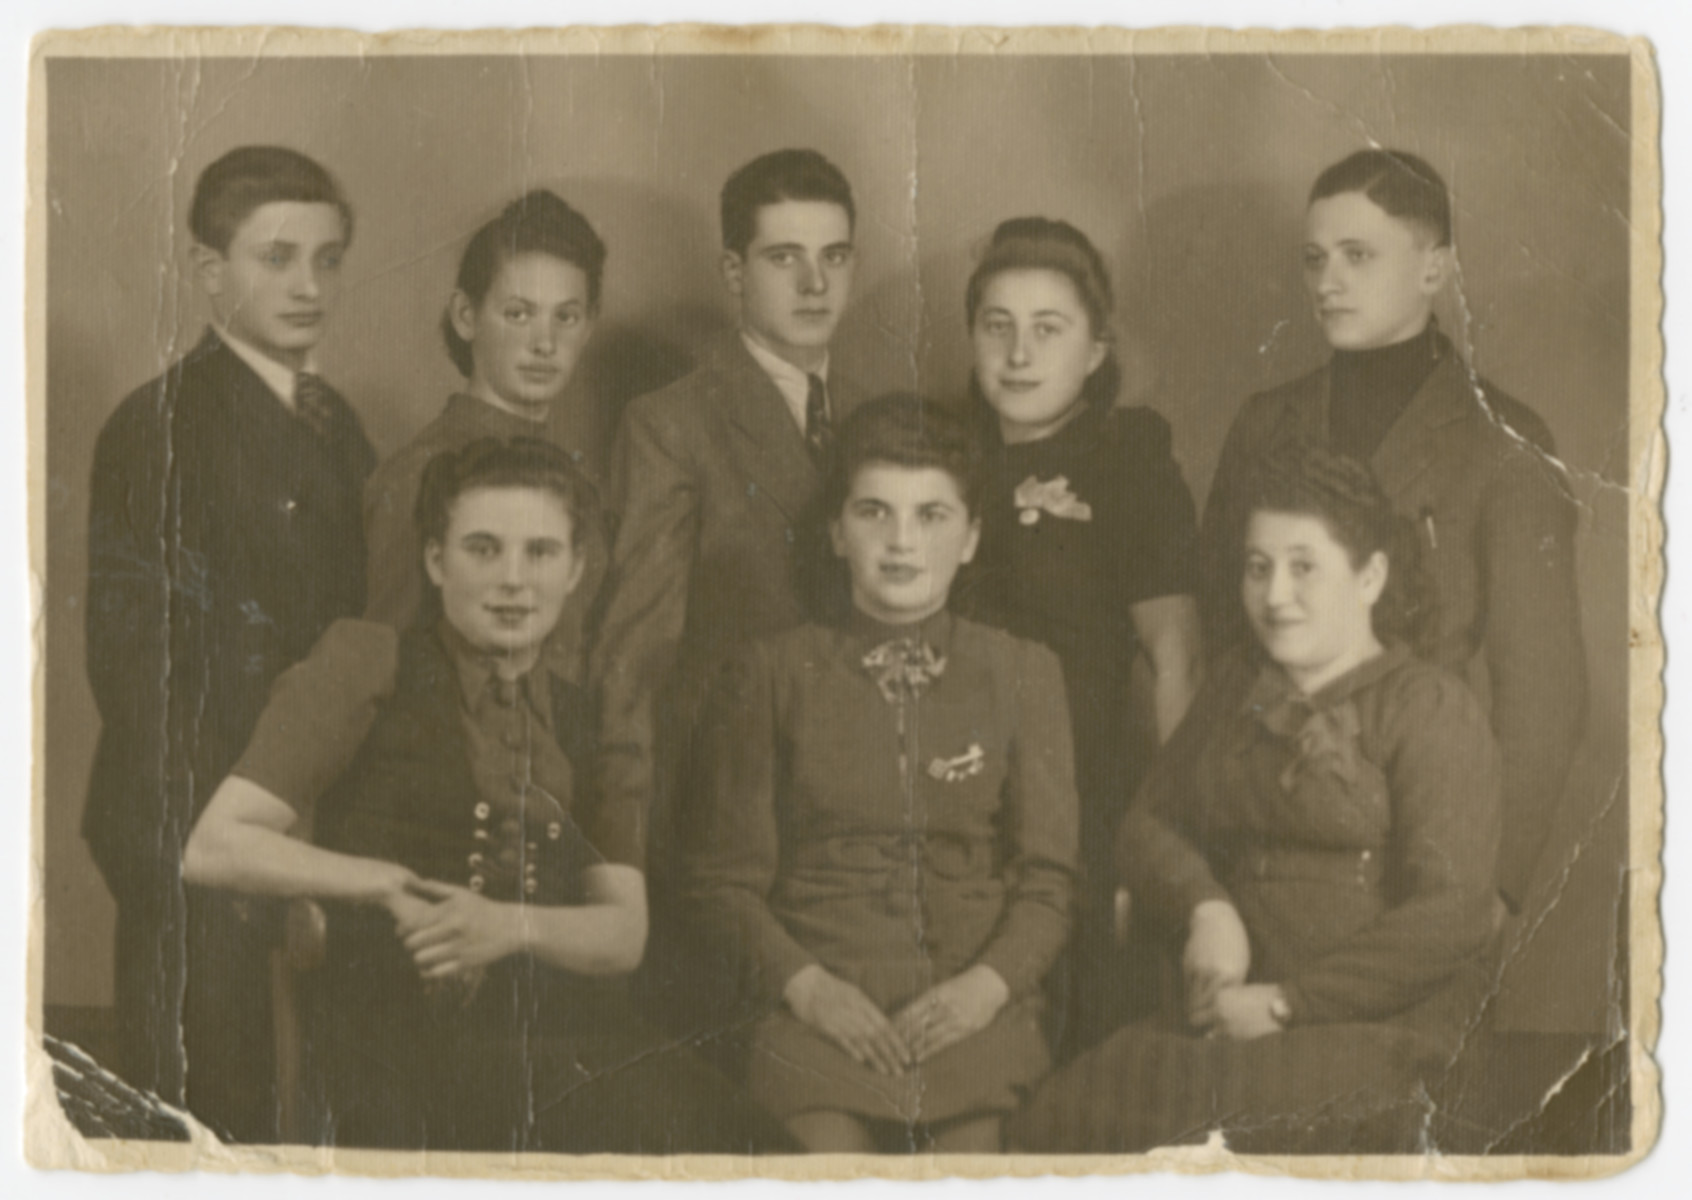 Group portrait of young adult members of the Rosenzweig family in prewar Sosnowiec and probably their friends  Anna Genzels is pictured in the center and David Rosenzweig is standing behind her.